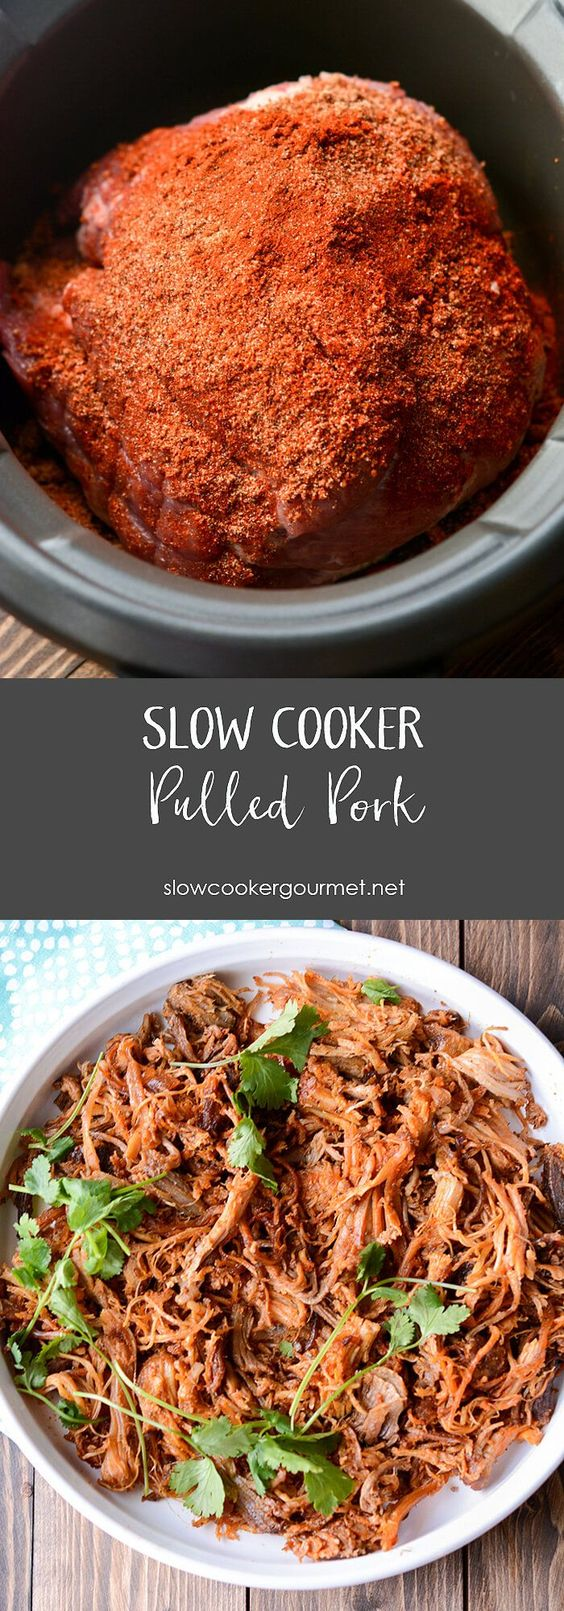 The Best Slow Cooker Pulled Pork | Recipe | Salts, Sauces ...